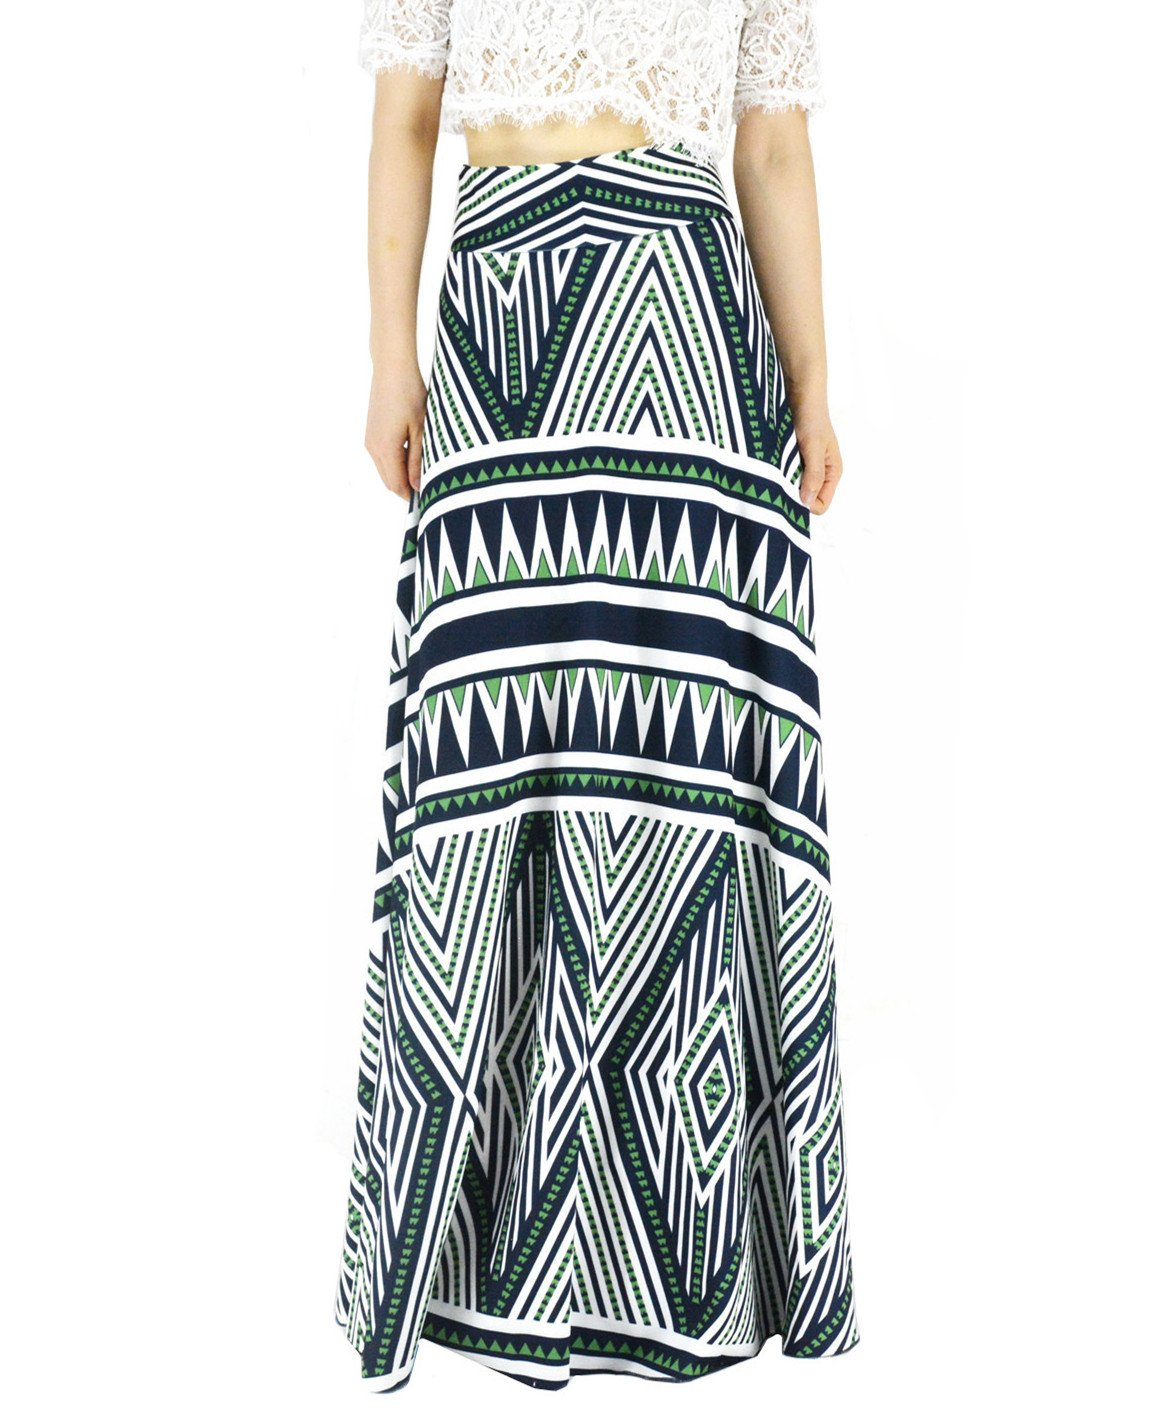 YSJERA Women's High Waist A-Line Pleated Solid Vintage Swing Maxi Skirts Midi Skirt Party (16 Plus, Green)